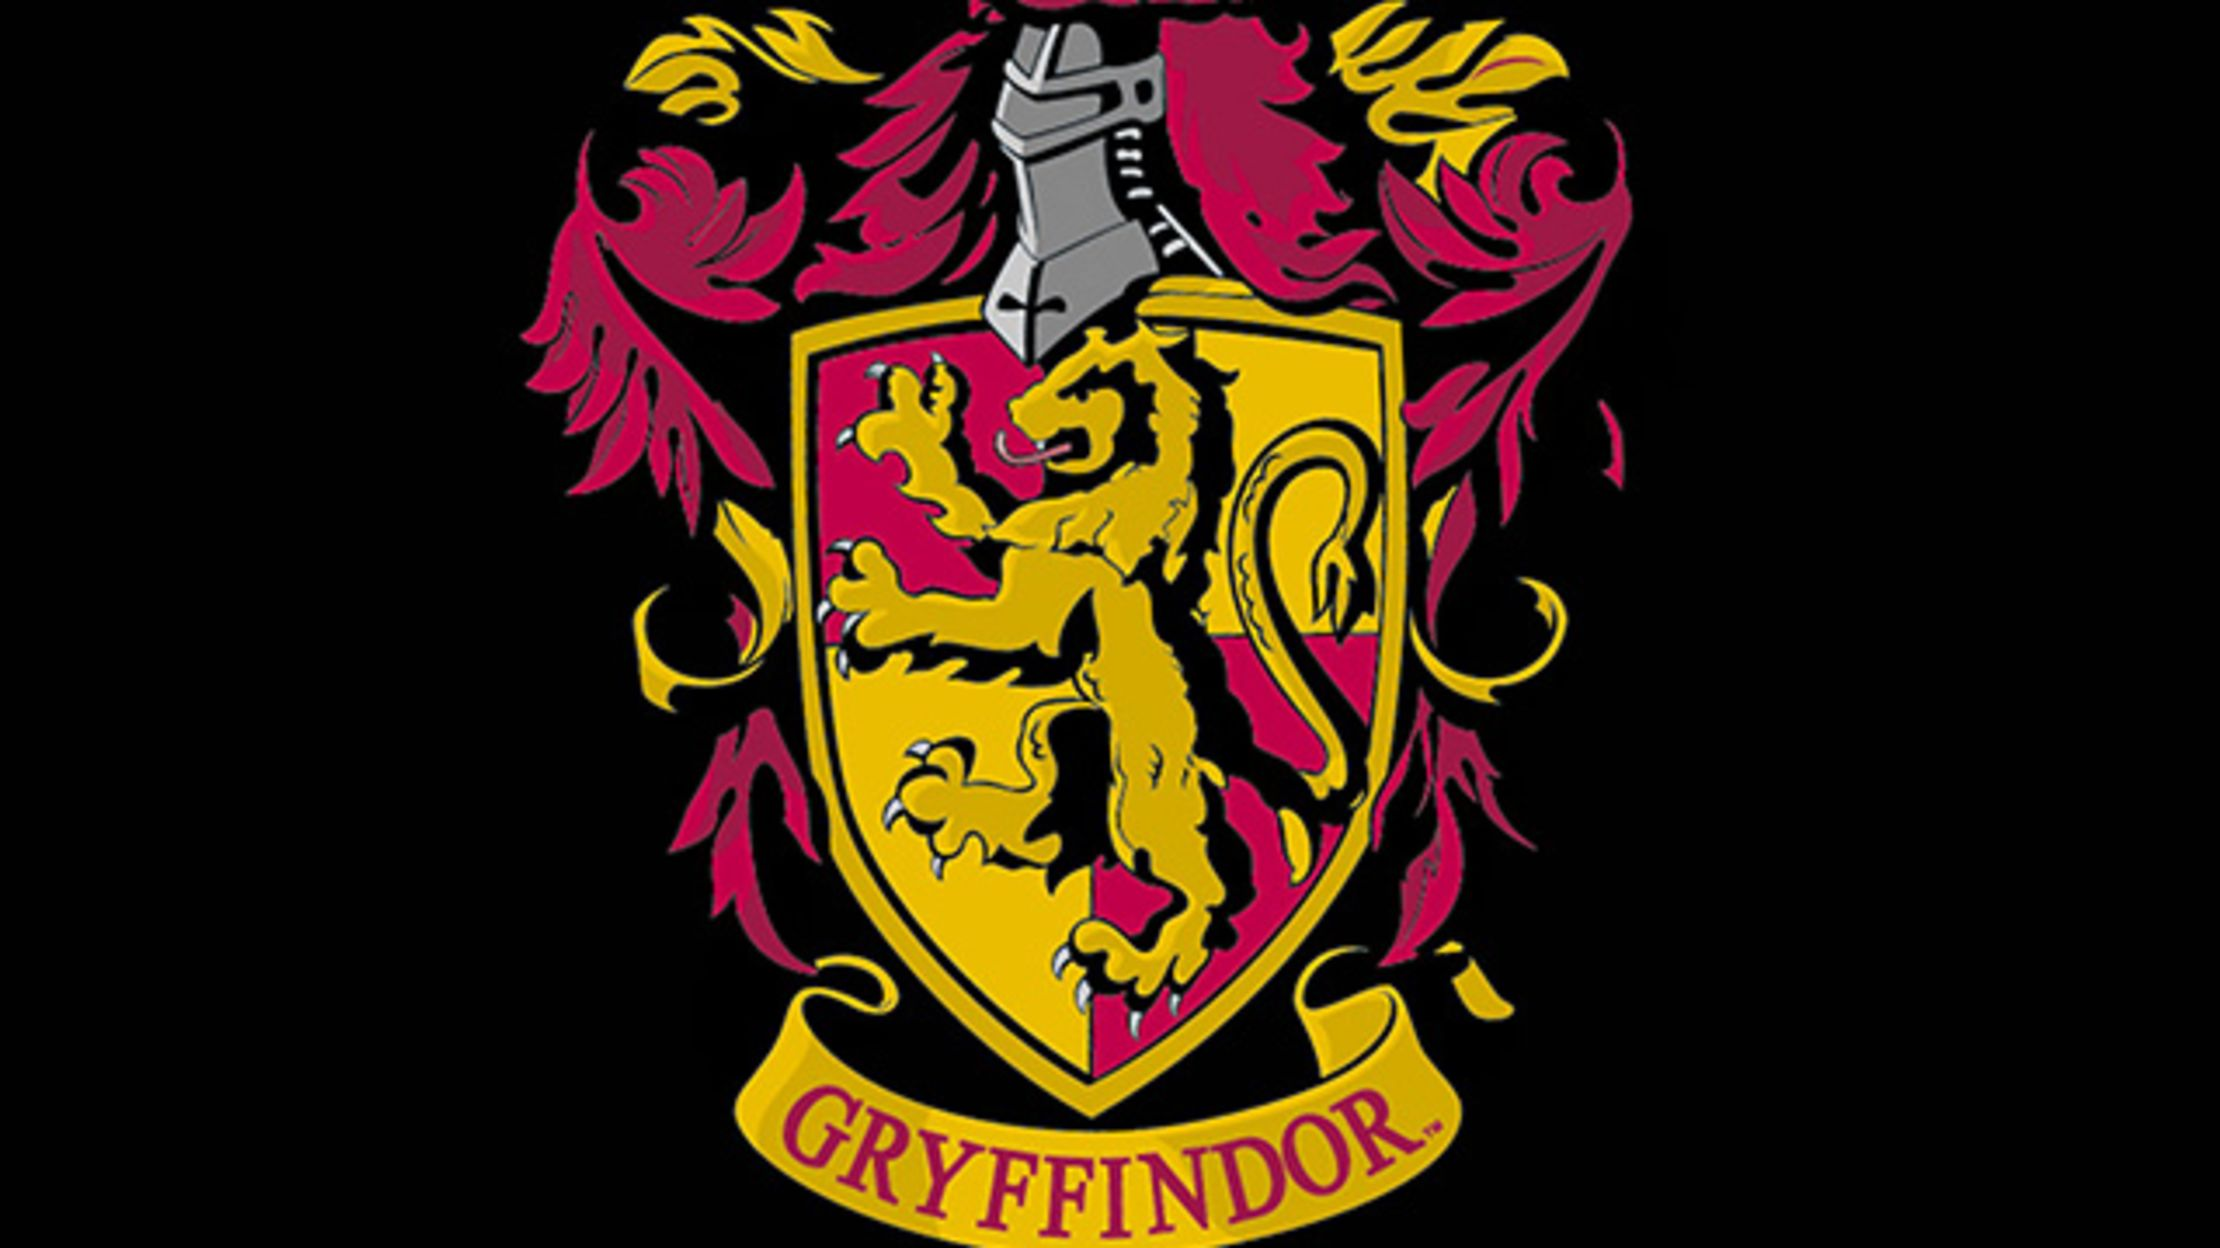 8 languages with different names for harry potter's